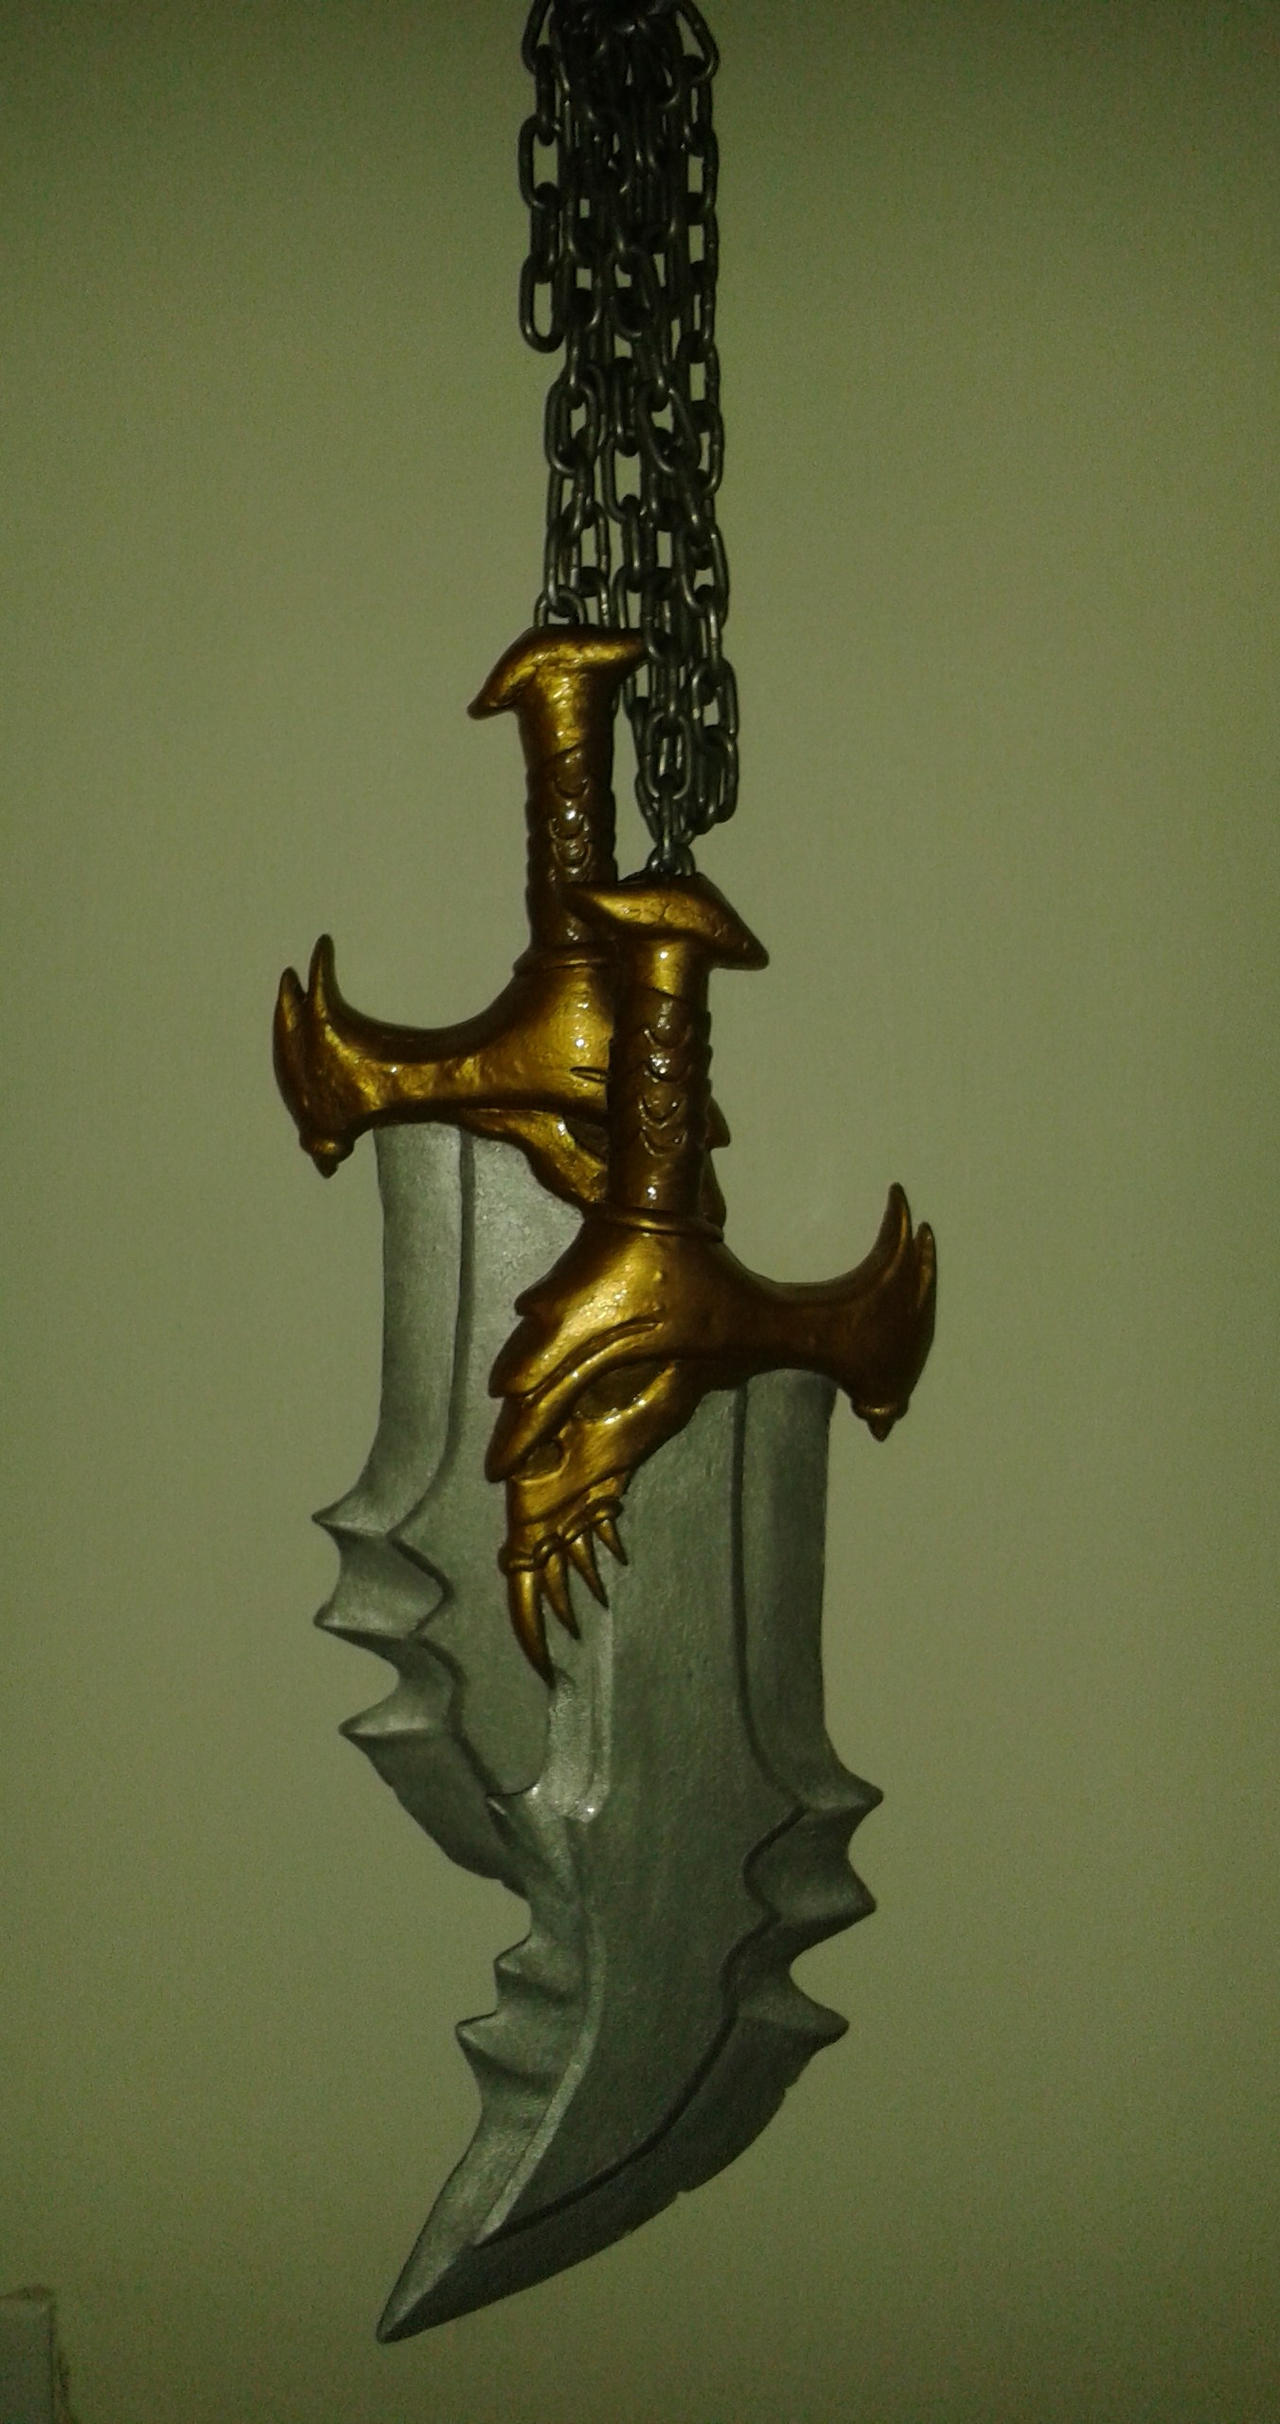 Blades of Chaos - God of War by KaysanSwanner on DeviantArt